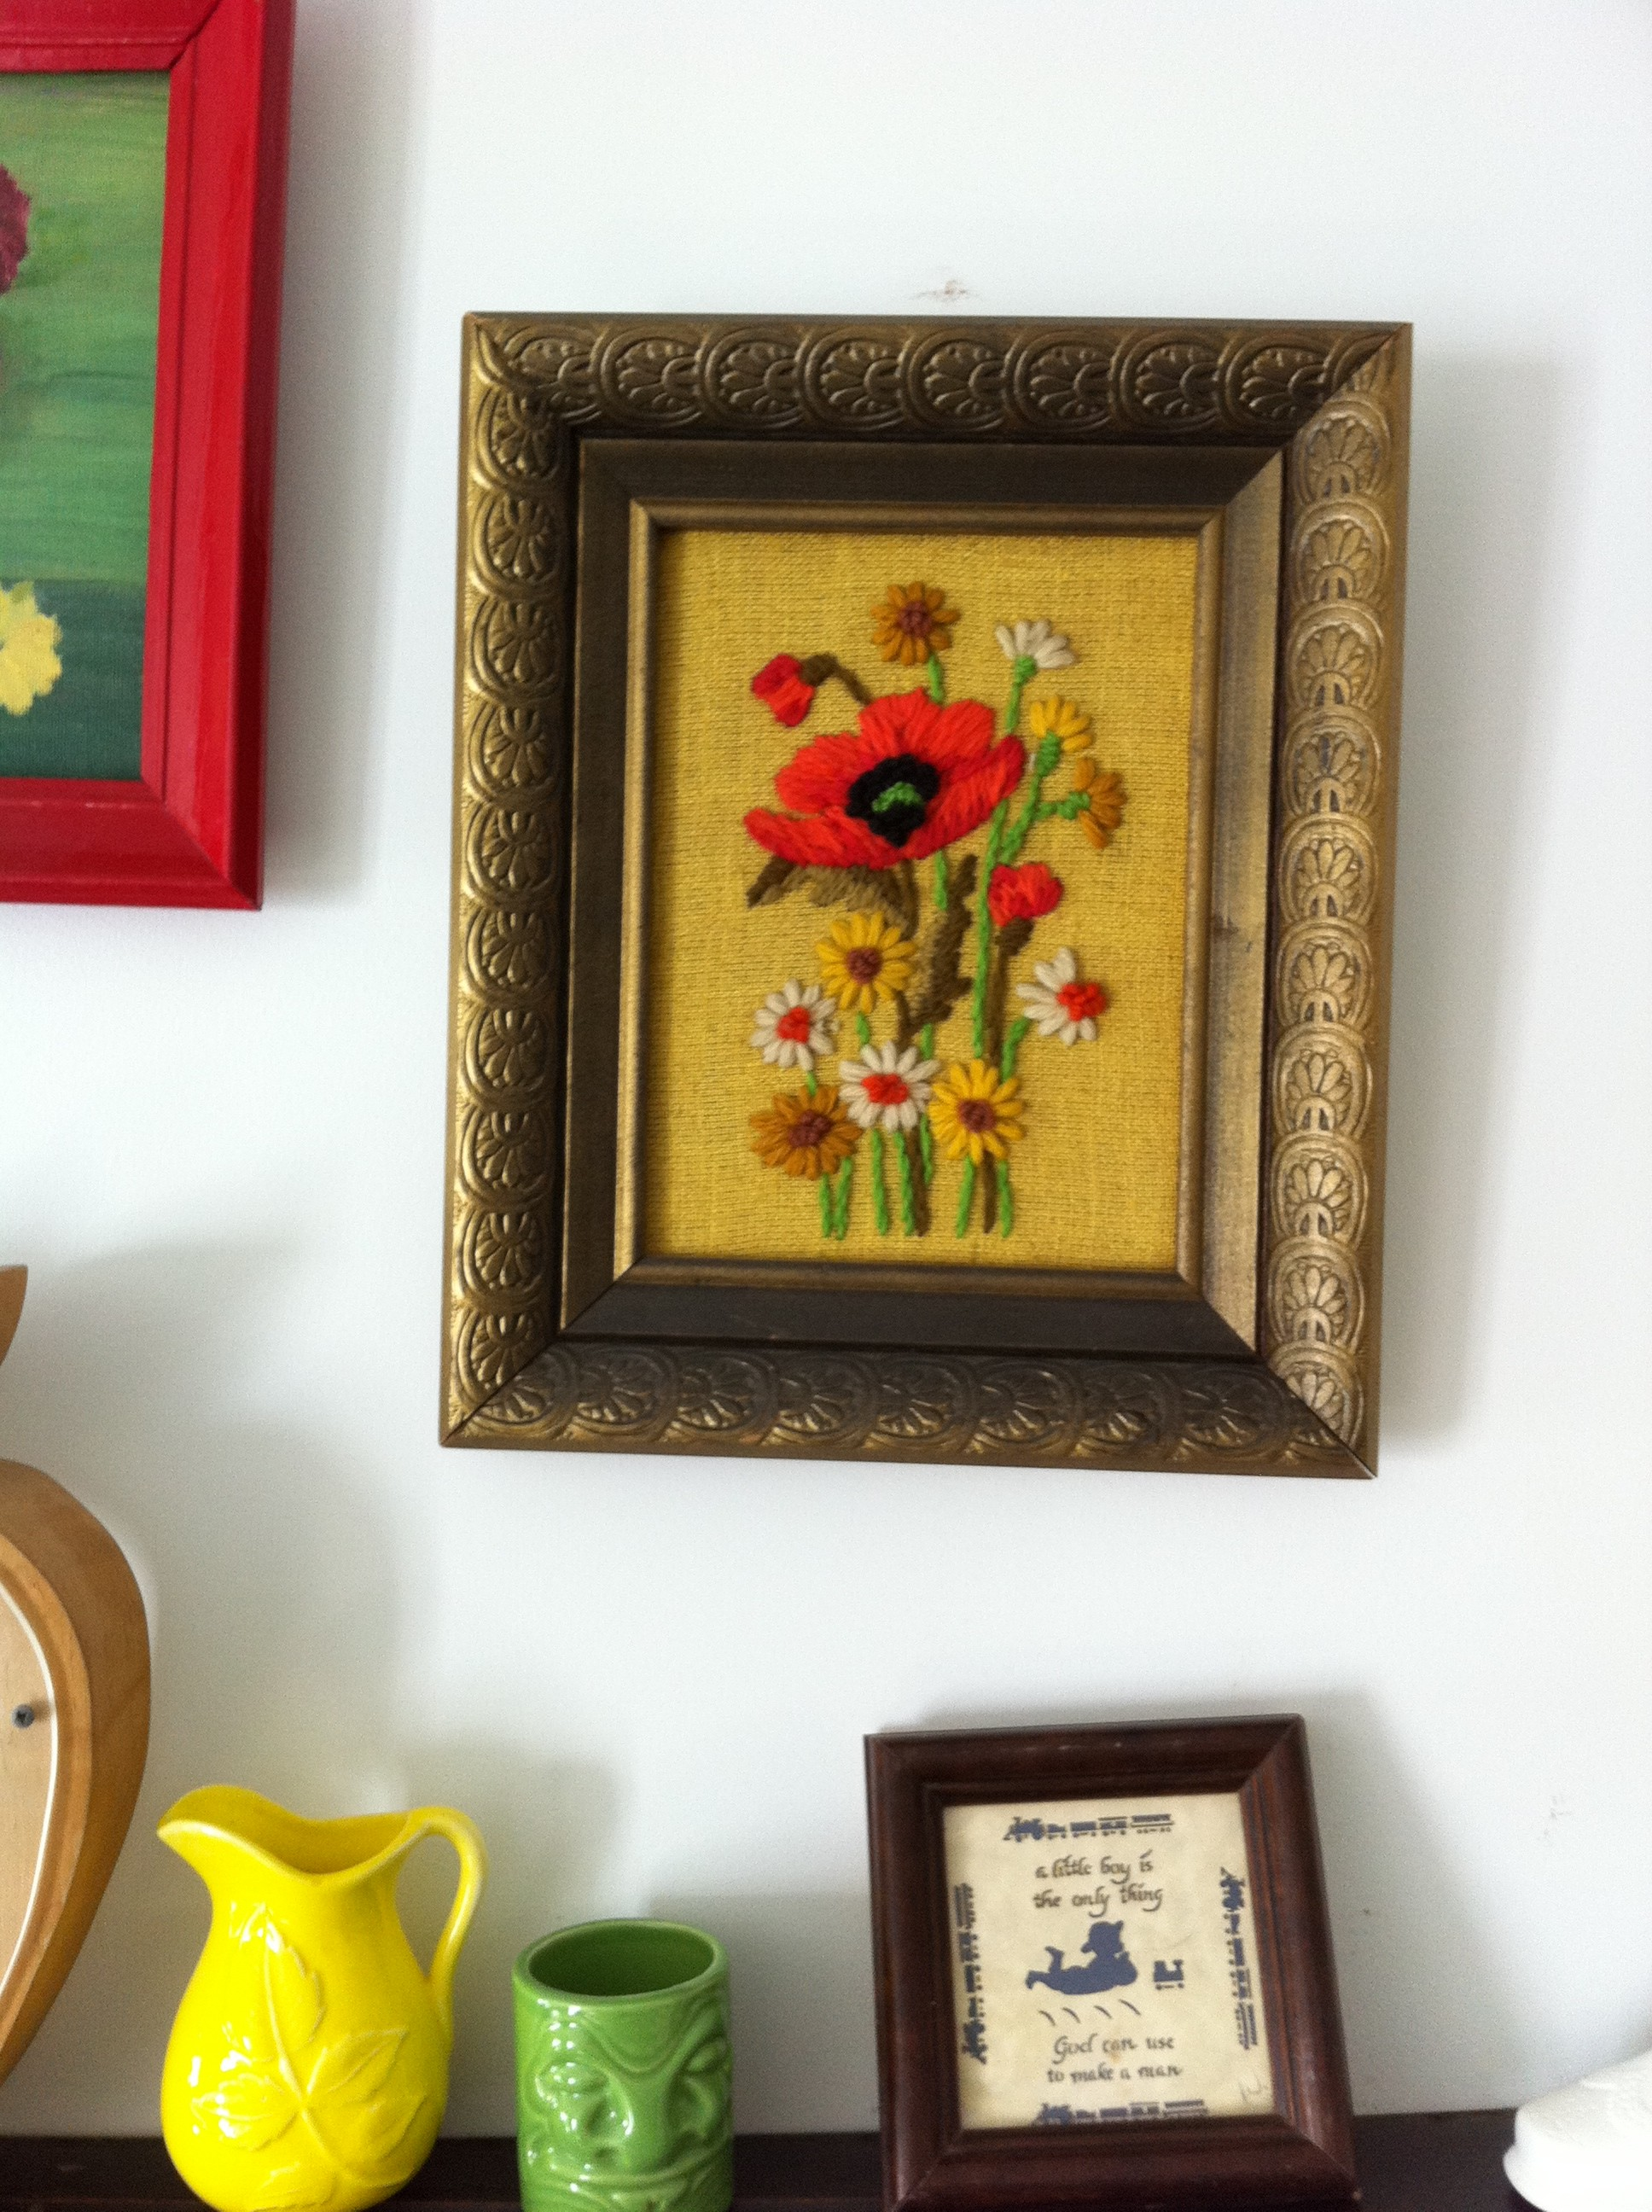 A pic of yarn artwork featuring a large red flower on a yellow linen background in a gold frame